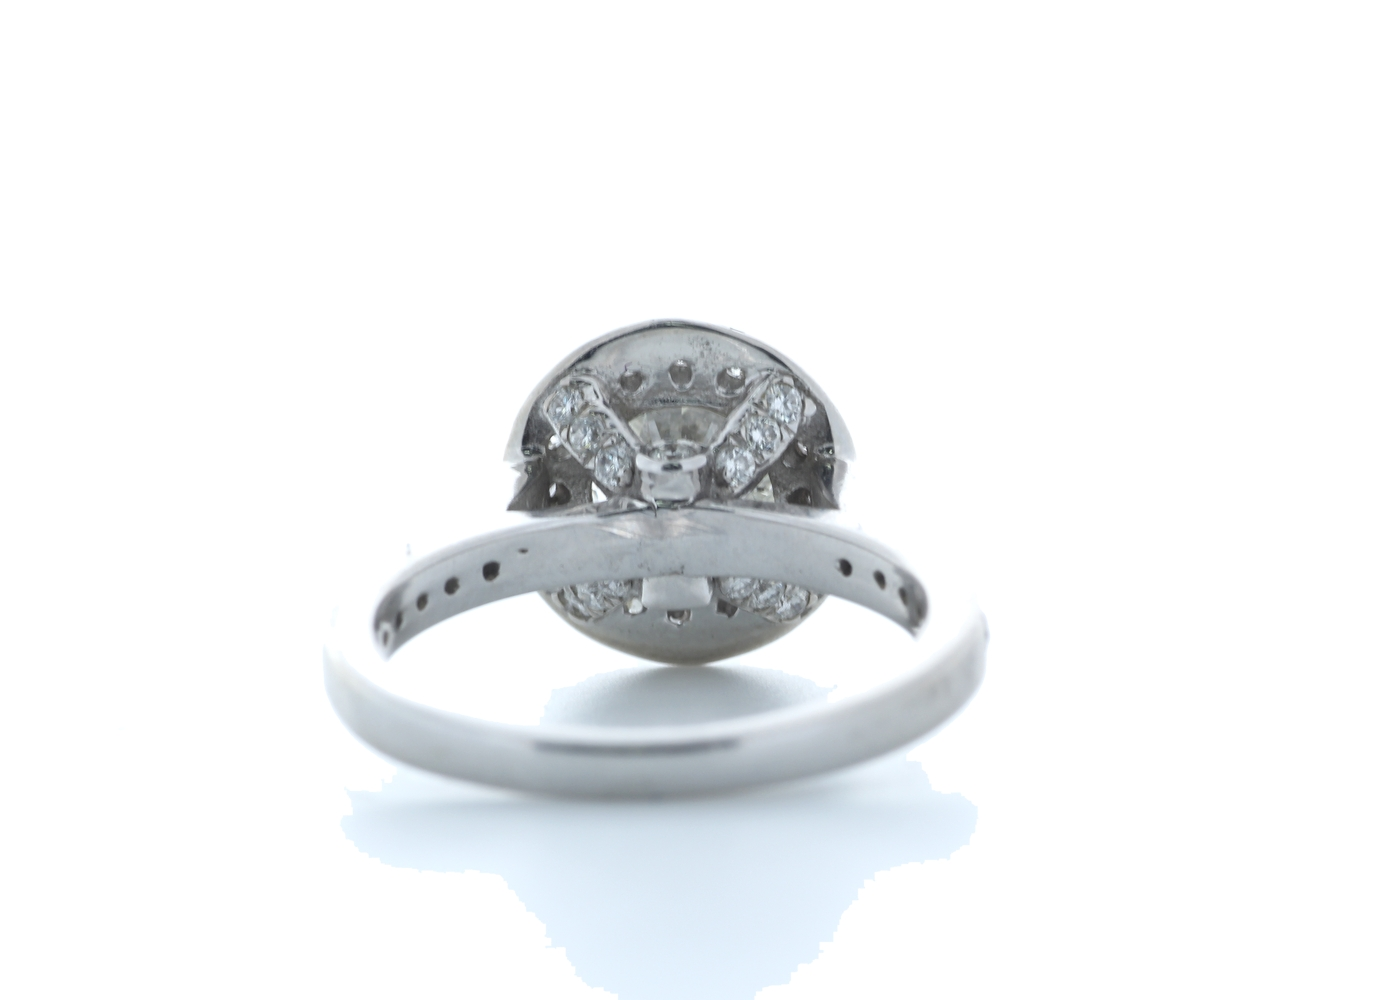 18ct White Gold Single Stone With Halo Setting Ring 2.00 (1.50) Carats - Image 3 of 5